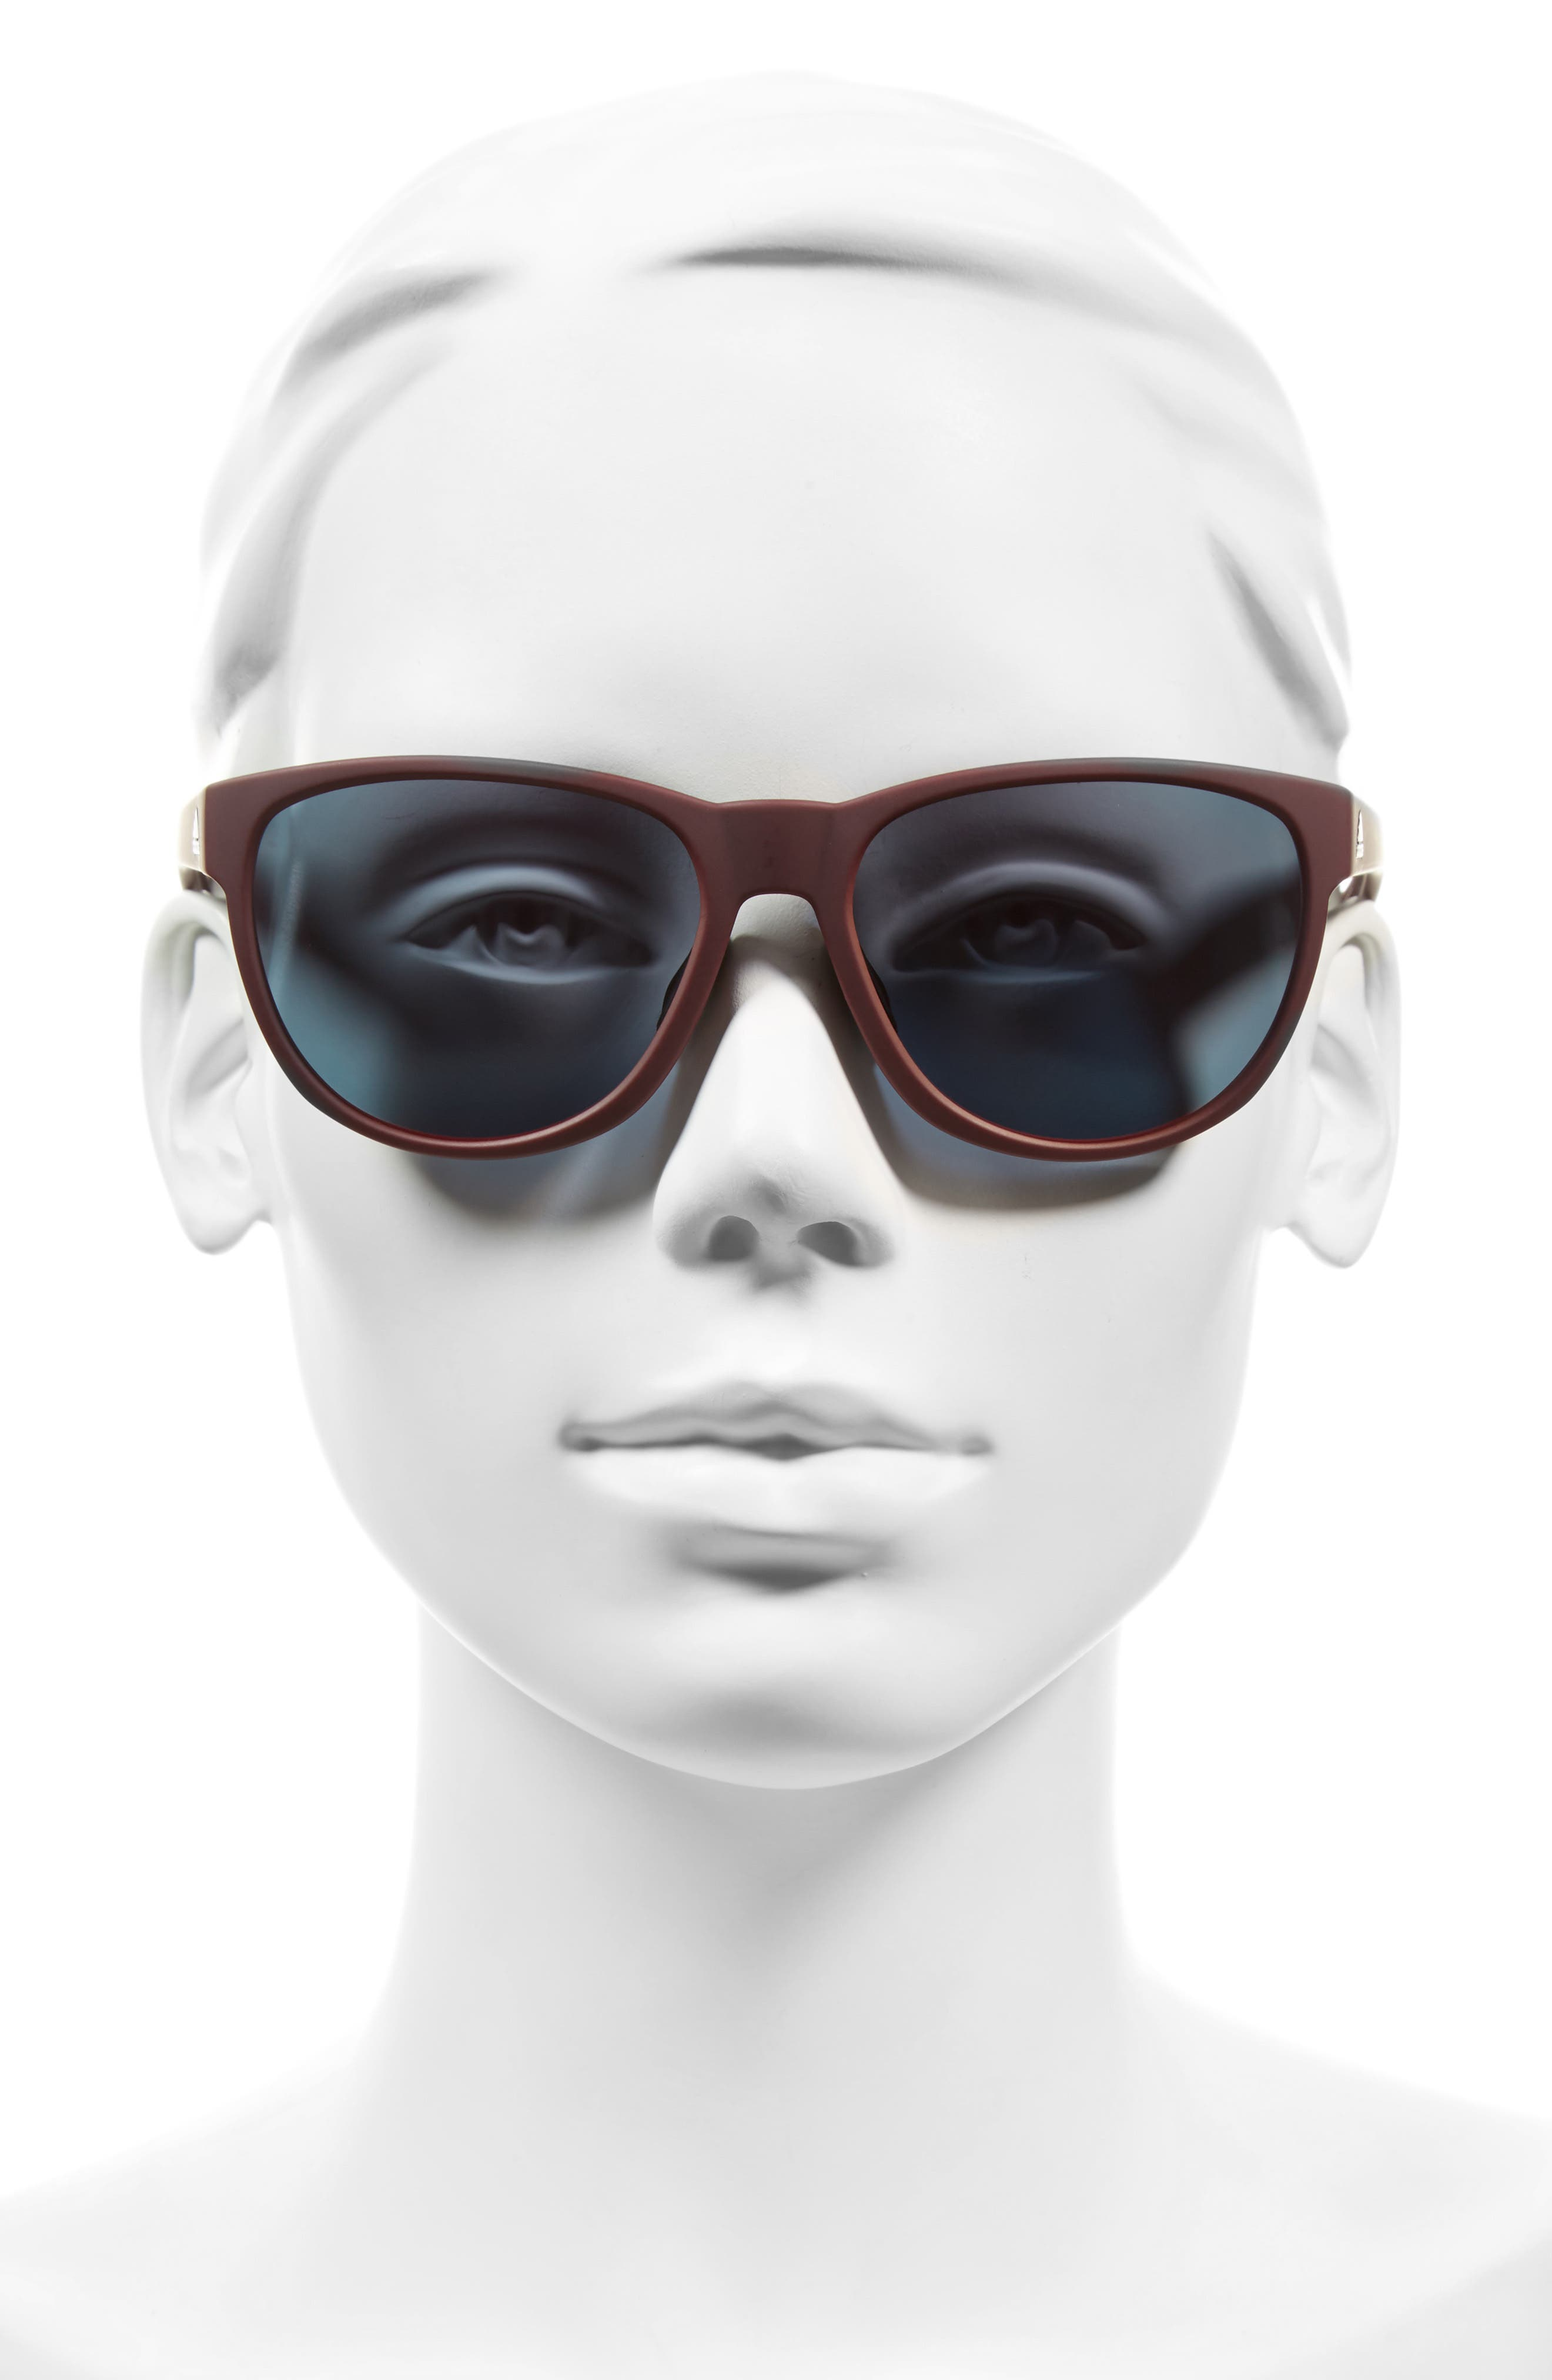 Wildcharge 61mm Mirrored Sunglasses,                             Alternate thumbnail 4, color,